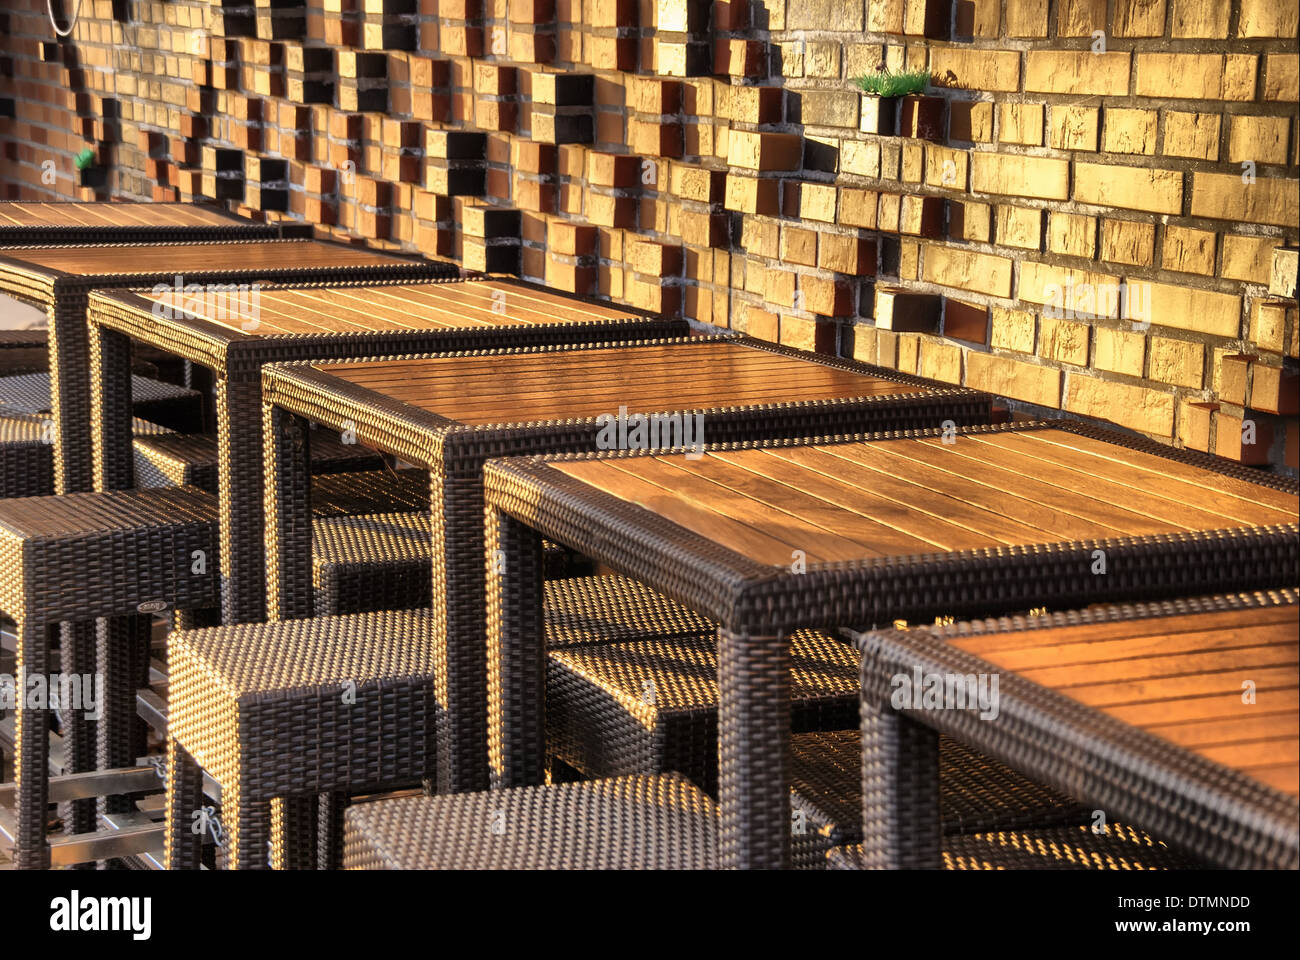 Hafen City stone wall with tables - Stock Image